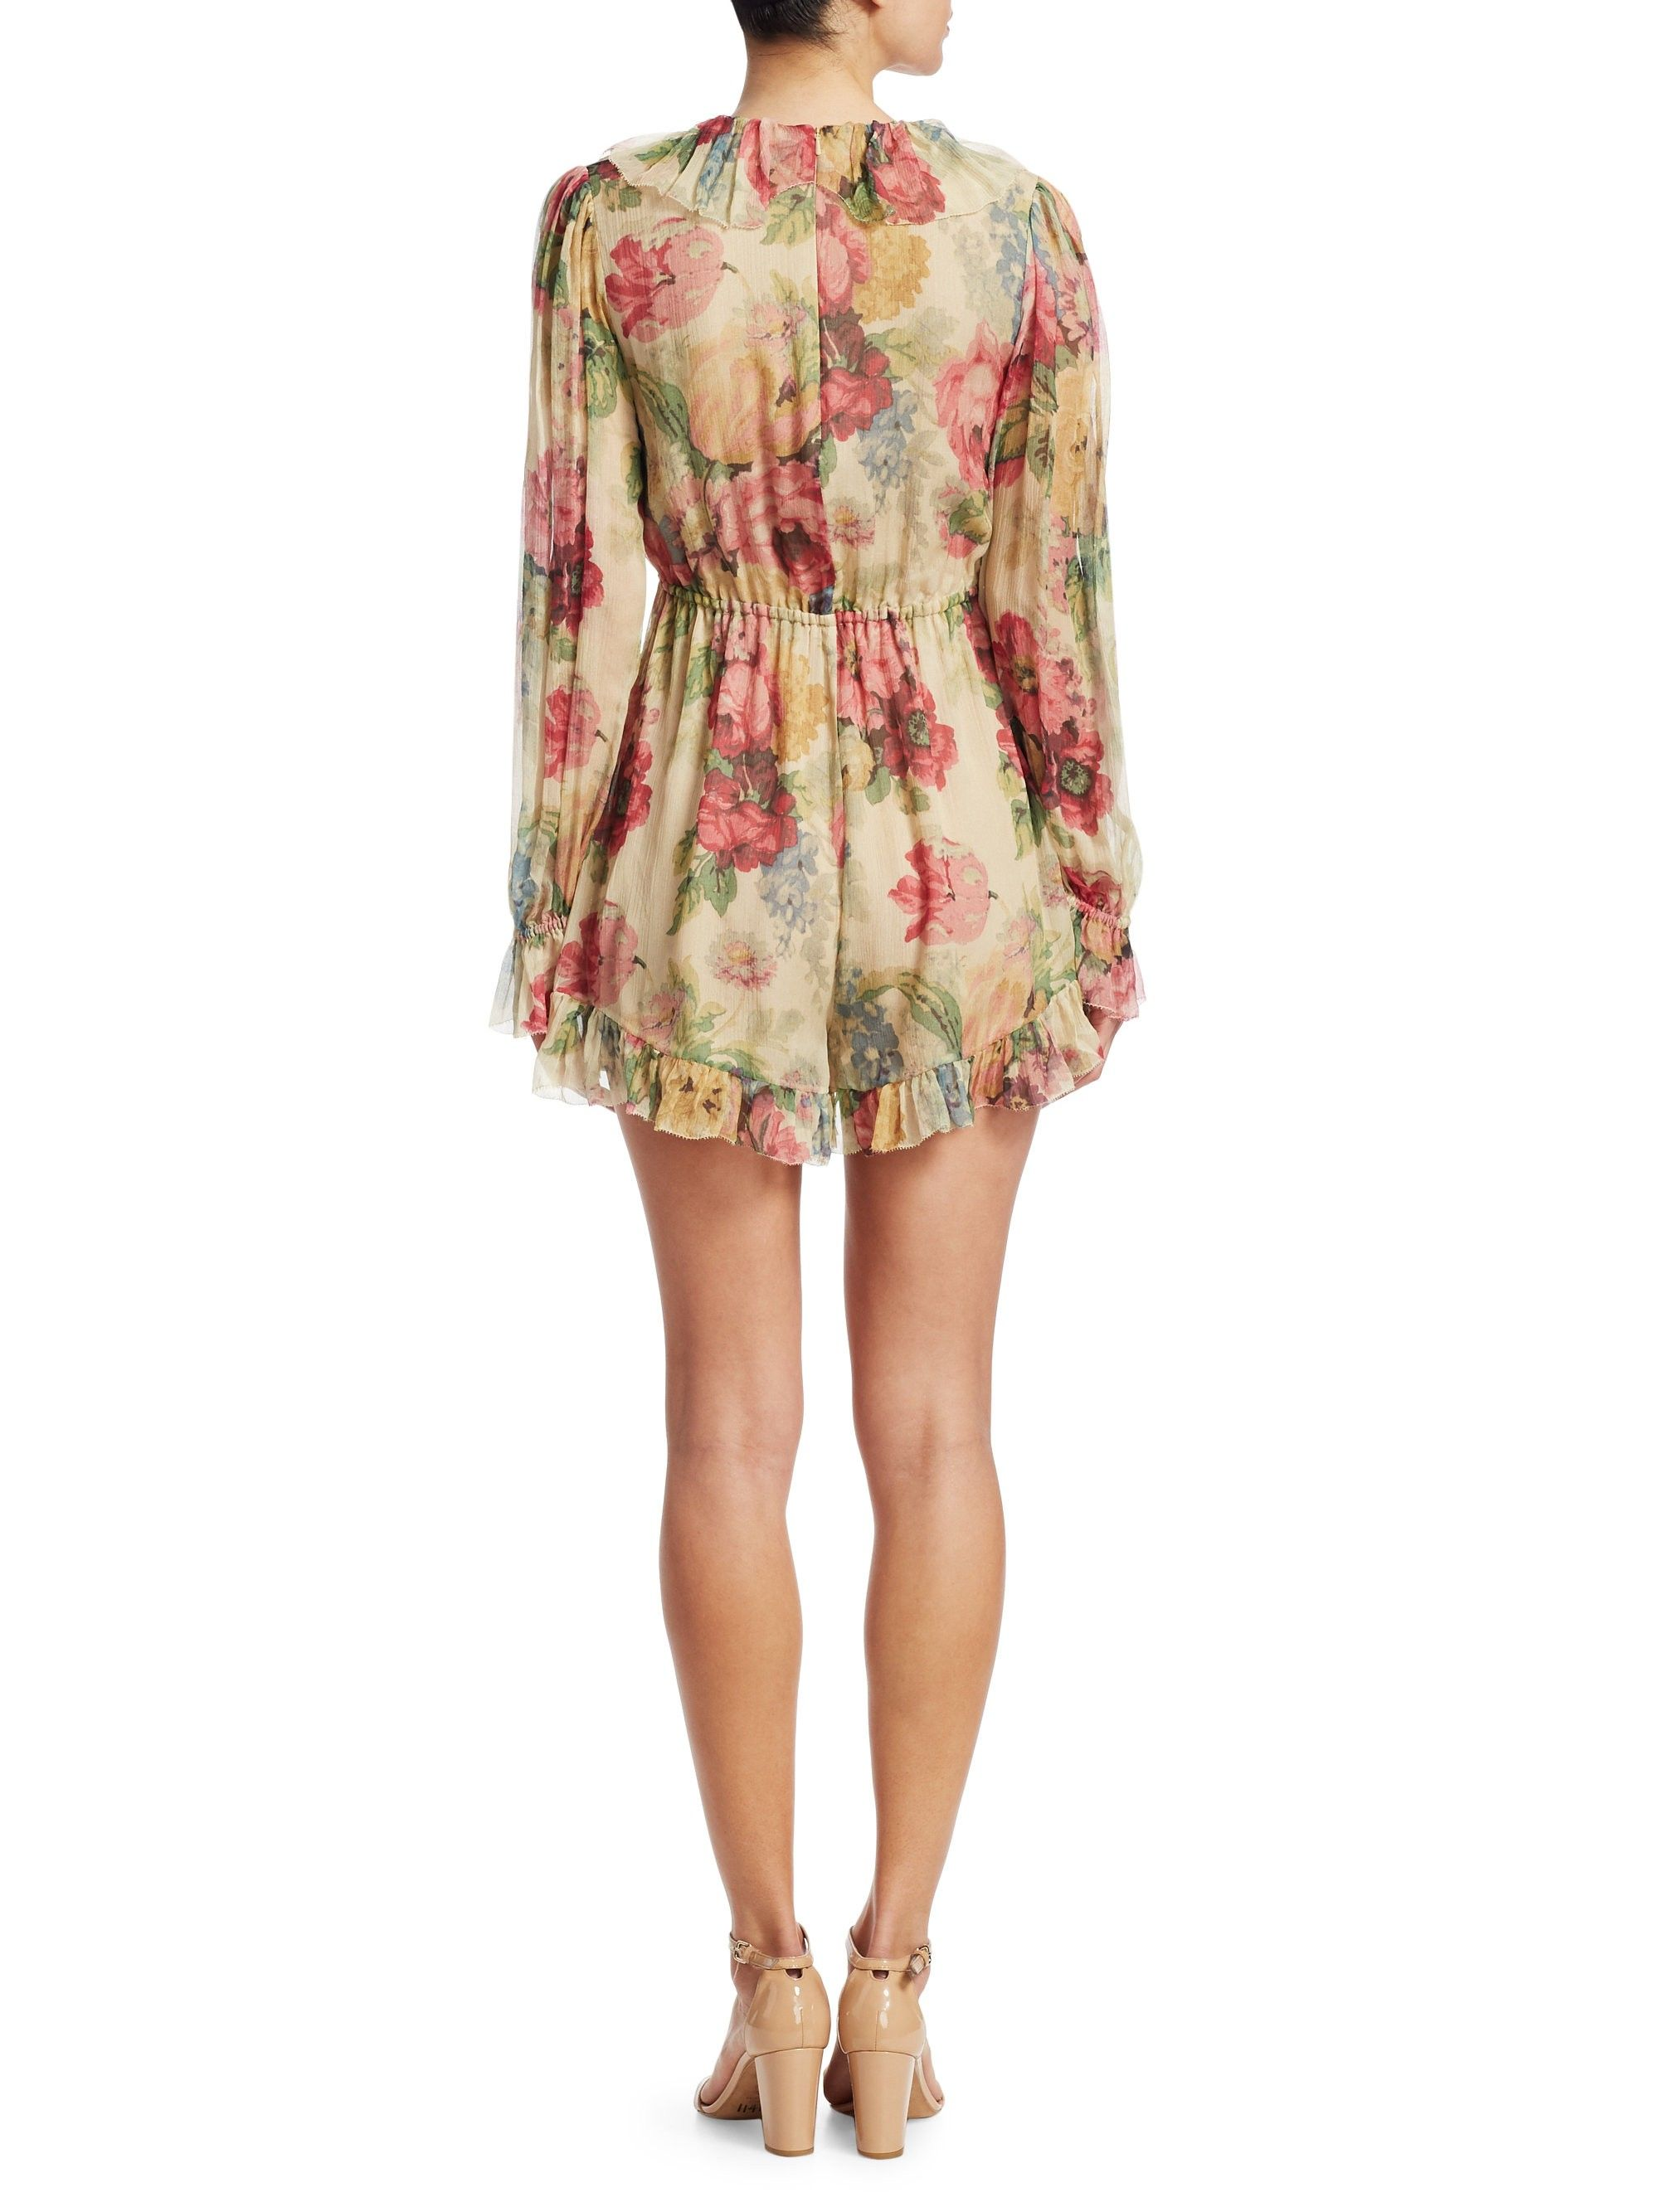 1650c45c23 Zimmermann Melody Floating Playsuit - Taupe Floral 1 (4-6)